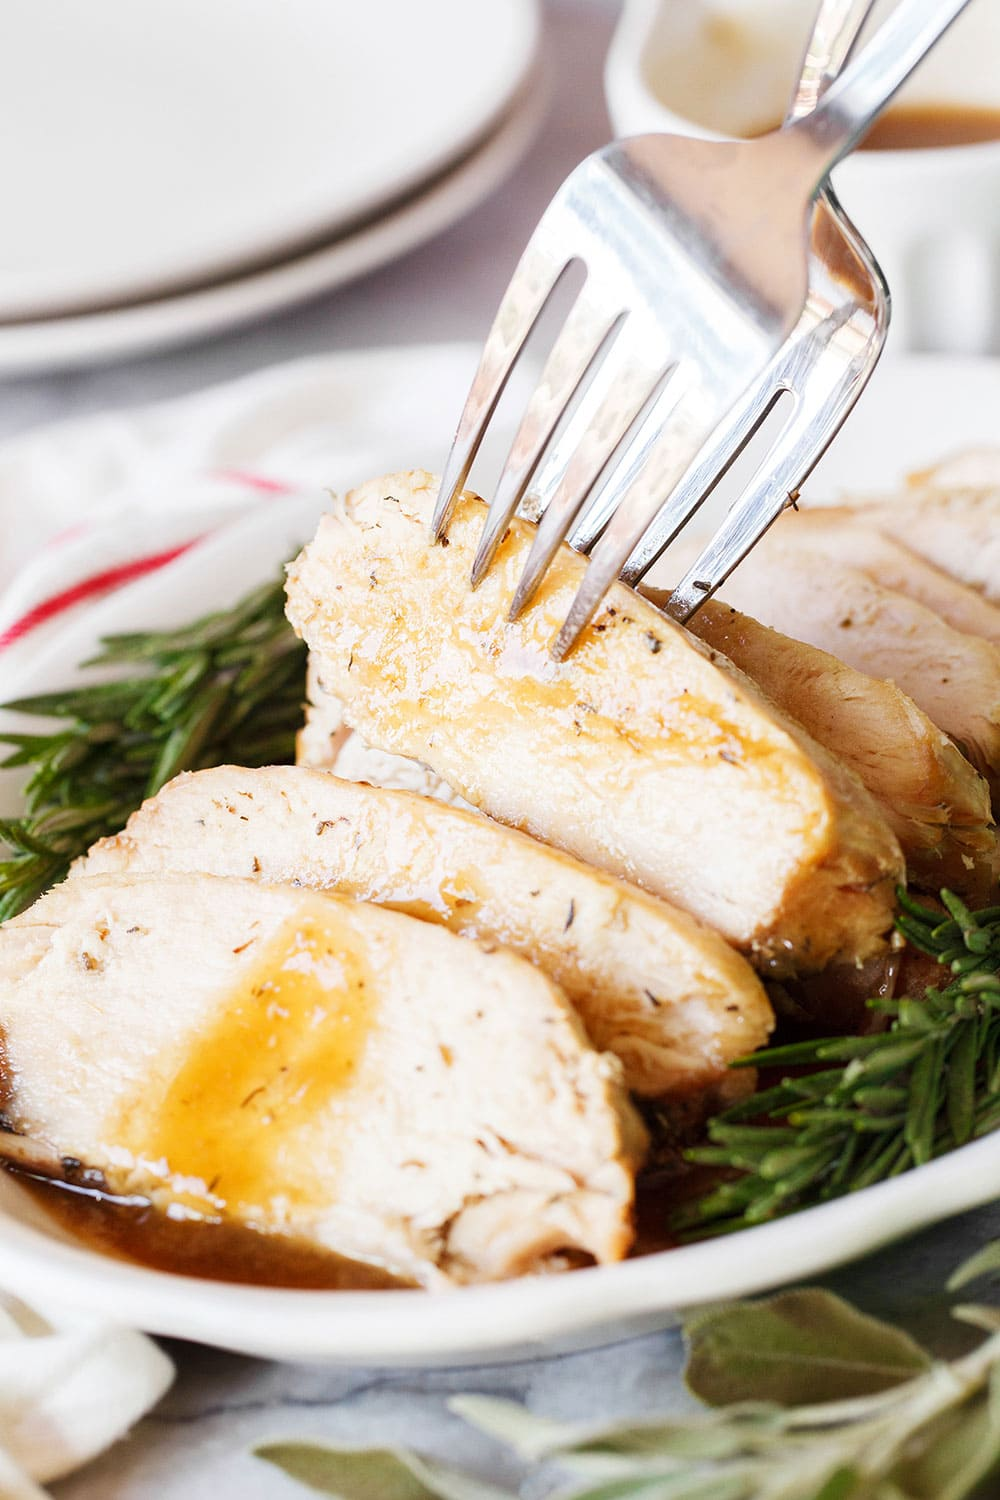 Slow Cooker Turkey Breast with easy gravy requires just 10 minutes prep time and doesn't take up valuable space in your oven on Thanksgiving! Plus it's extra tender and moist, it's a win-win!!